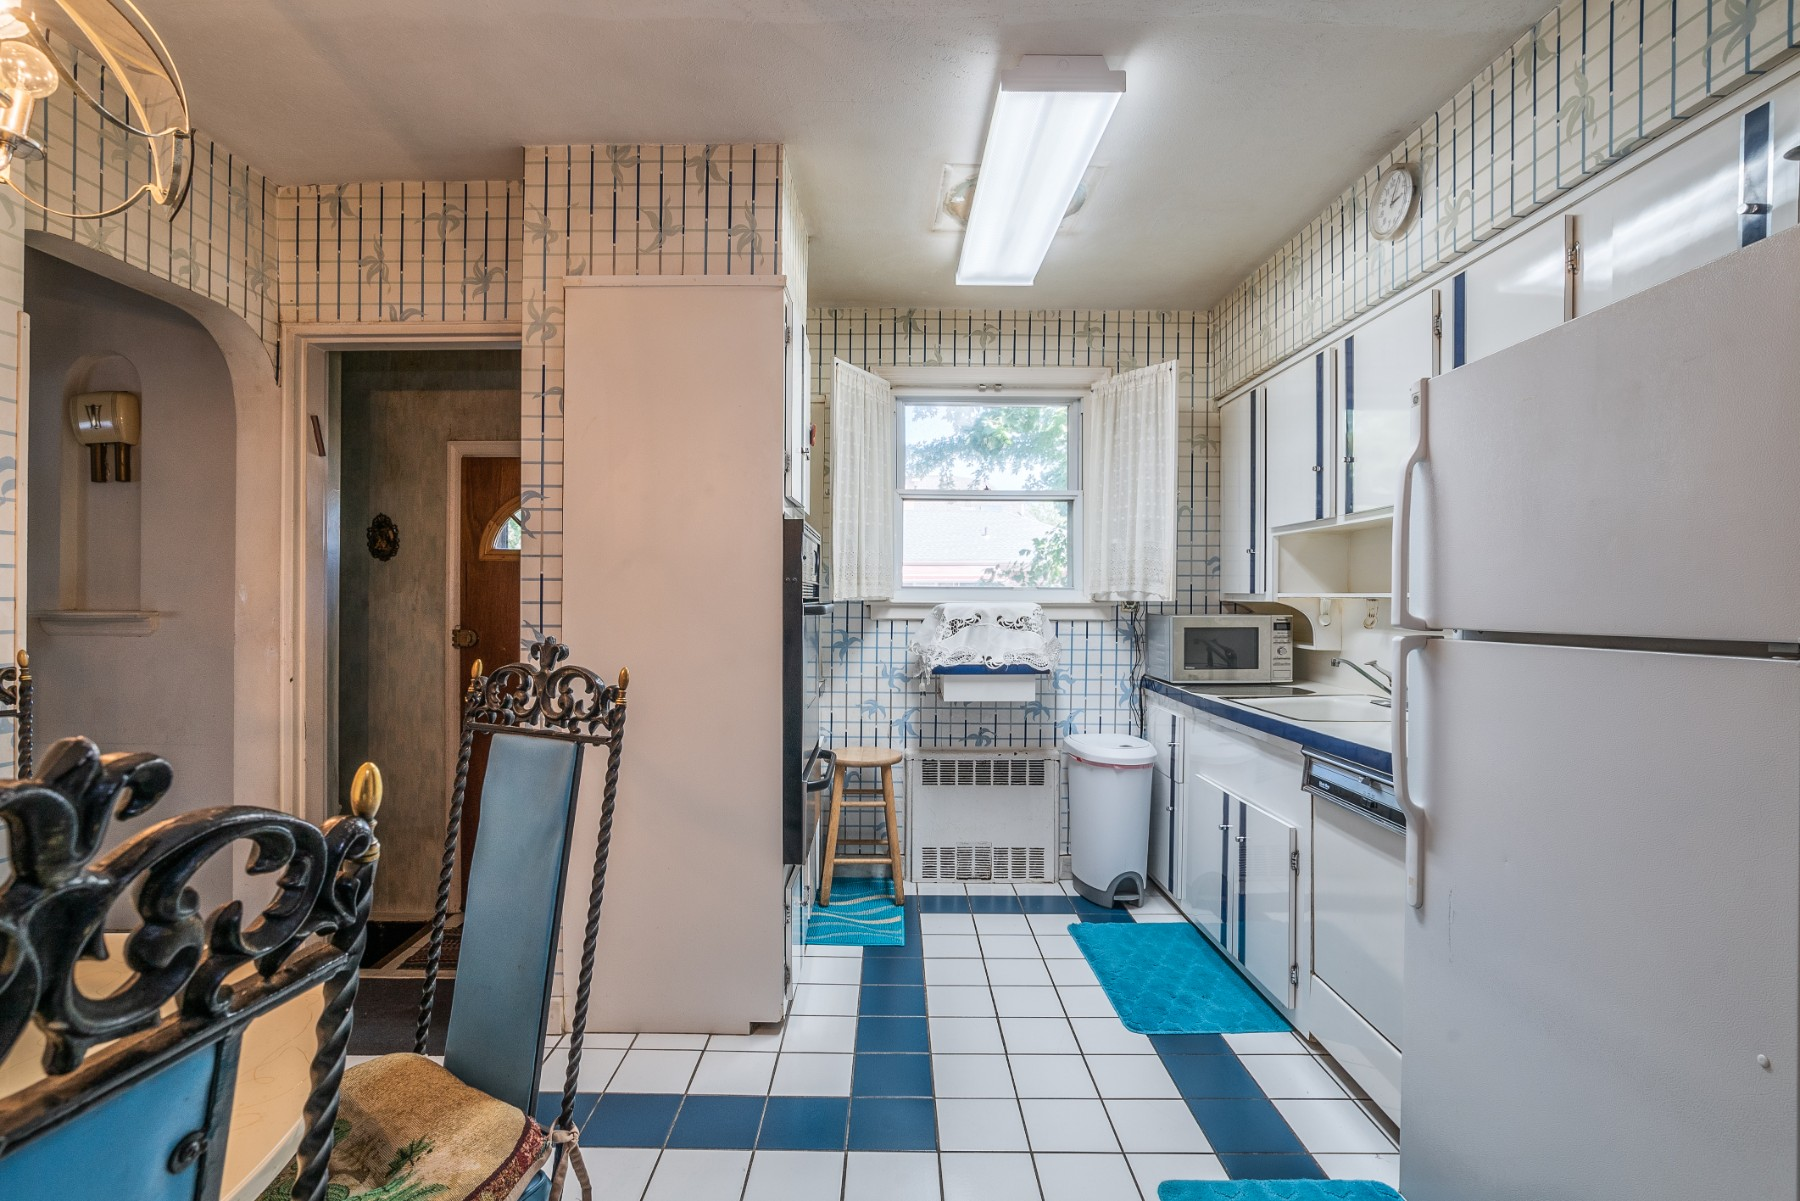 168-20 69th Avenue Hillcrest Queens NY 11365